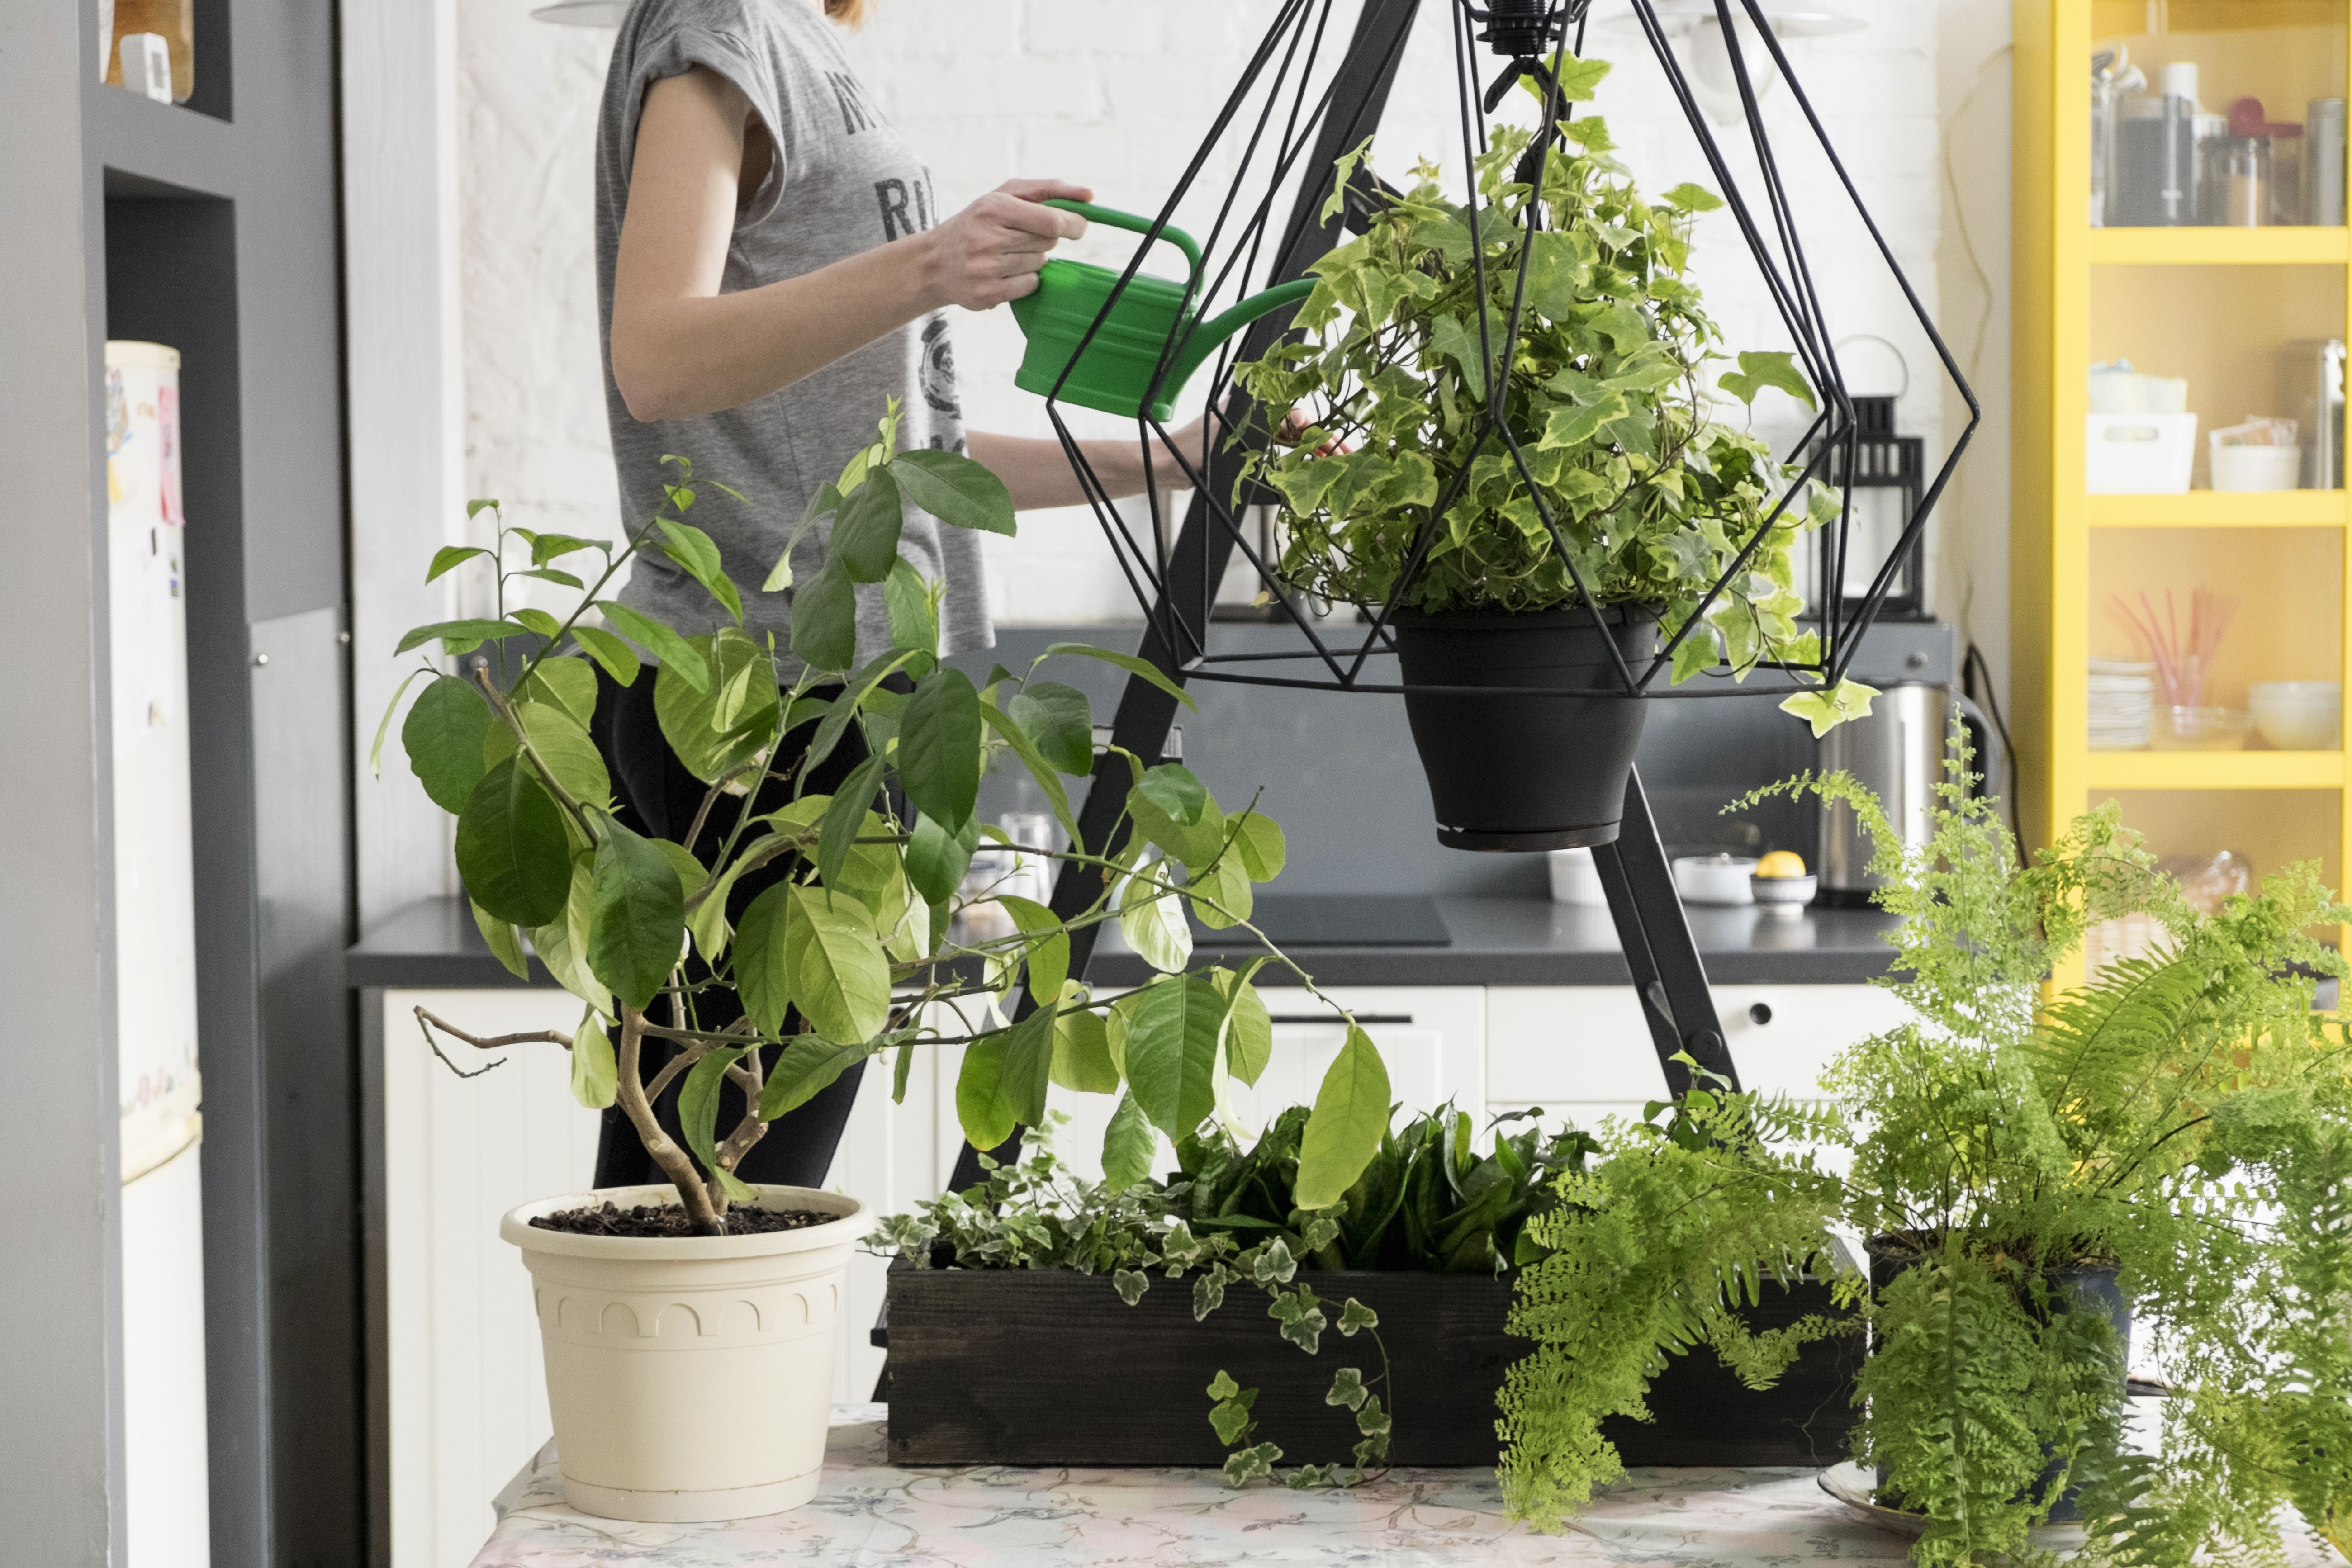 Starting an Indoor Plant Business on lawn equipment, weighing equipment, gardening equipment, fertilizer equipment, plant equipment, hunting equipment, farming equipment, wedding equipment, washing equipment, mowing equipment, landscaping equipment, pond equipment,